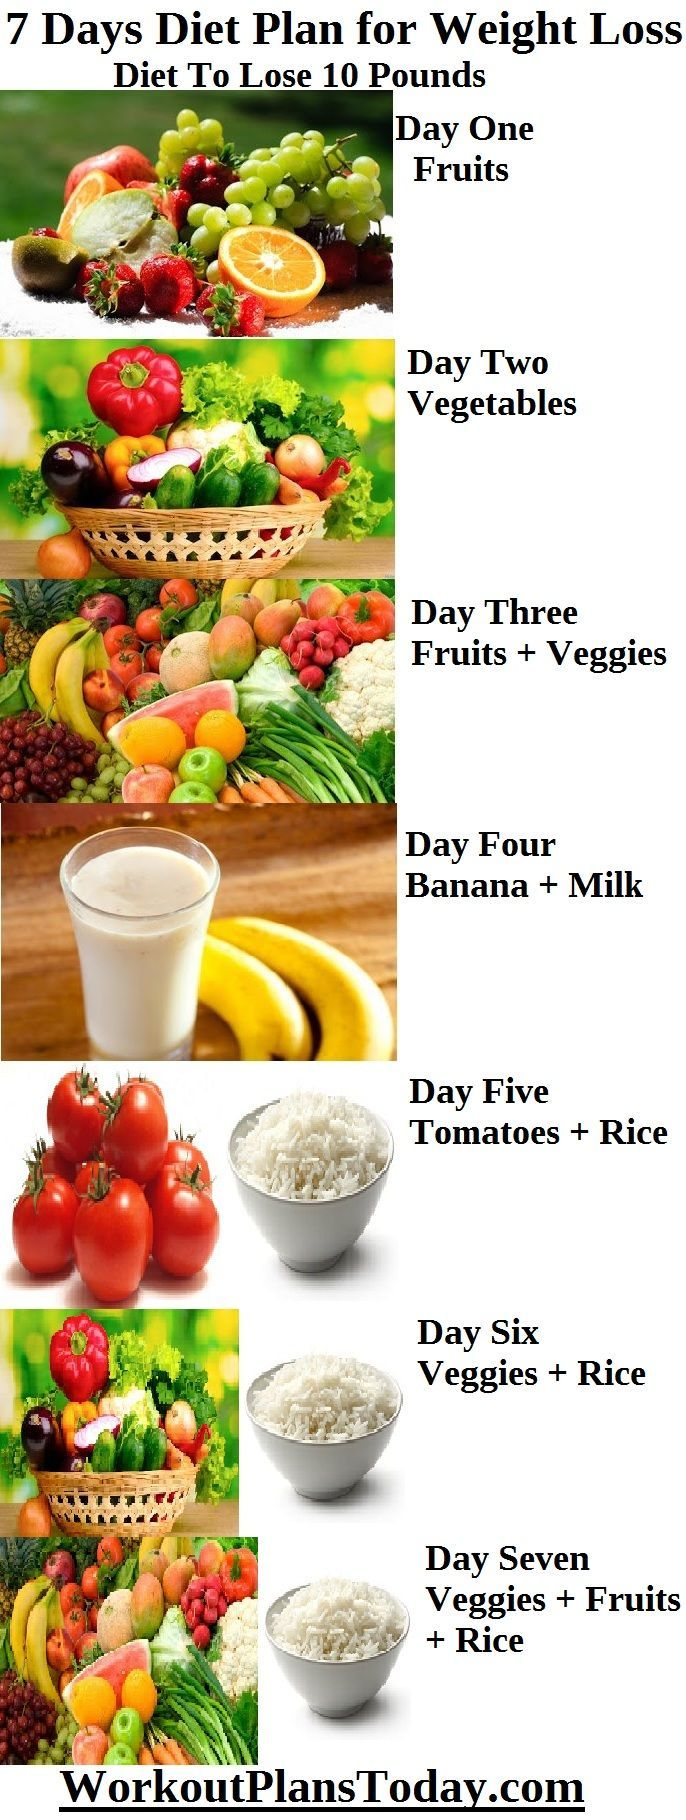 25+ best ideas about 7 Day Diet Plan on Pinterest